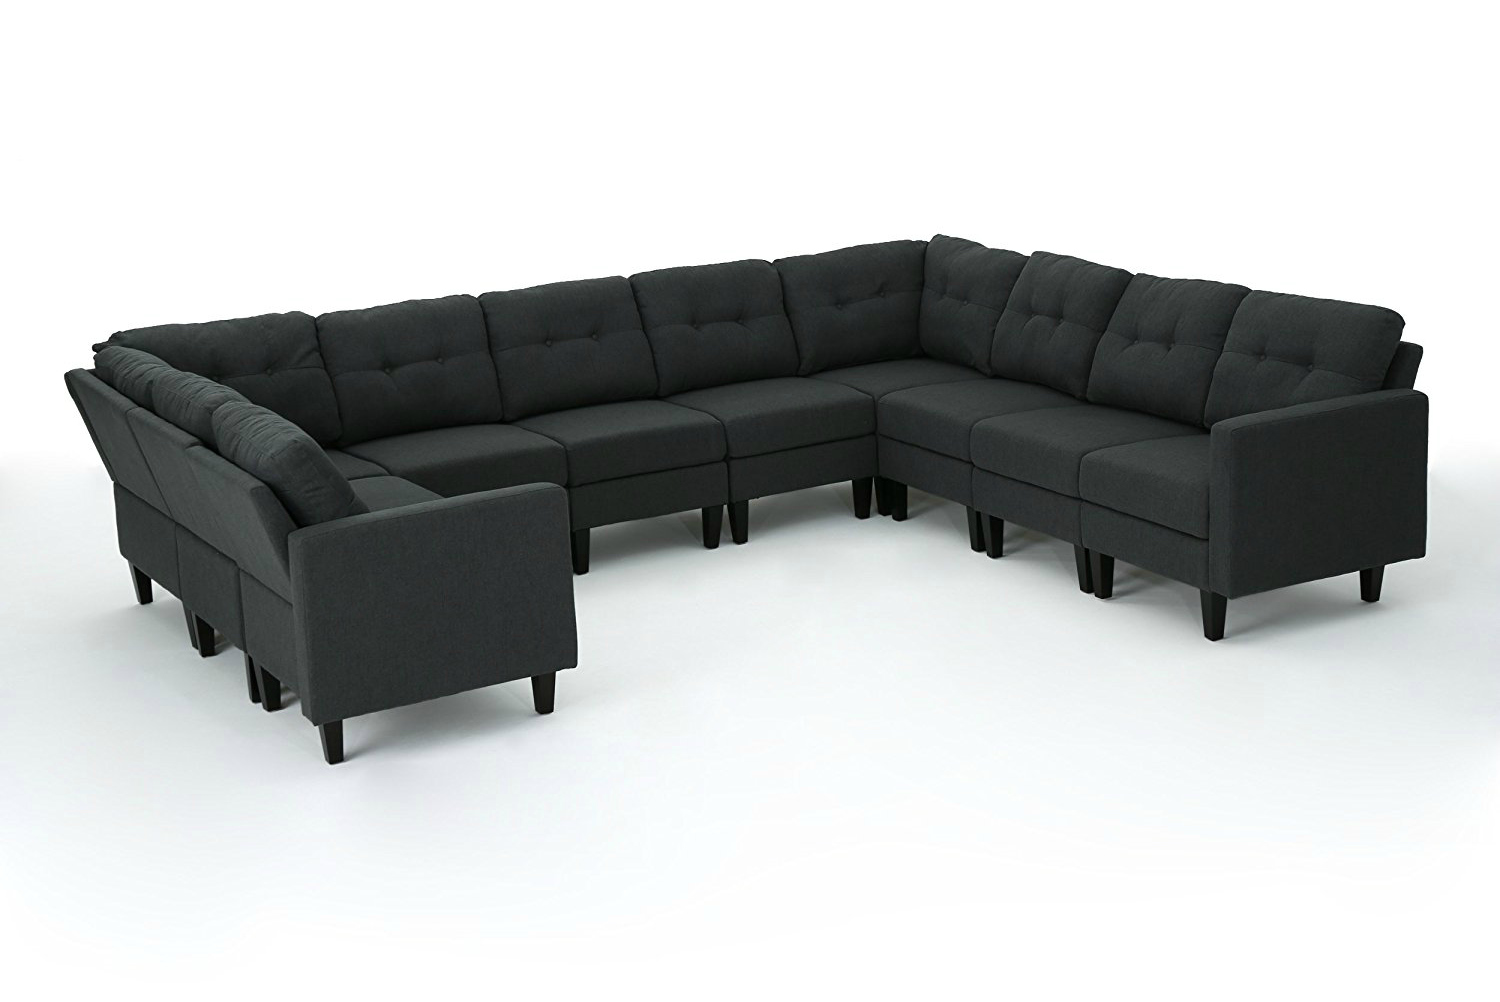 Affordable and Stylish Grey Sofa and Sectional Options (Something for Everyone!)